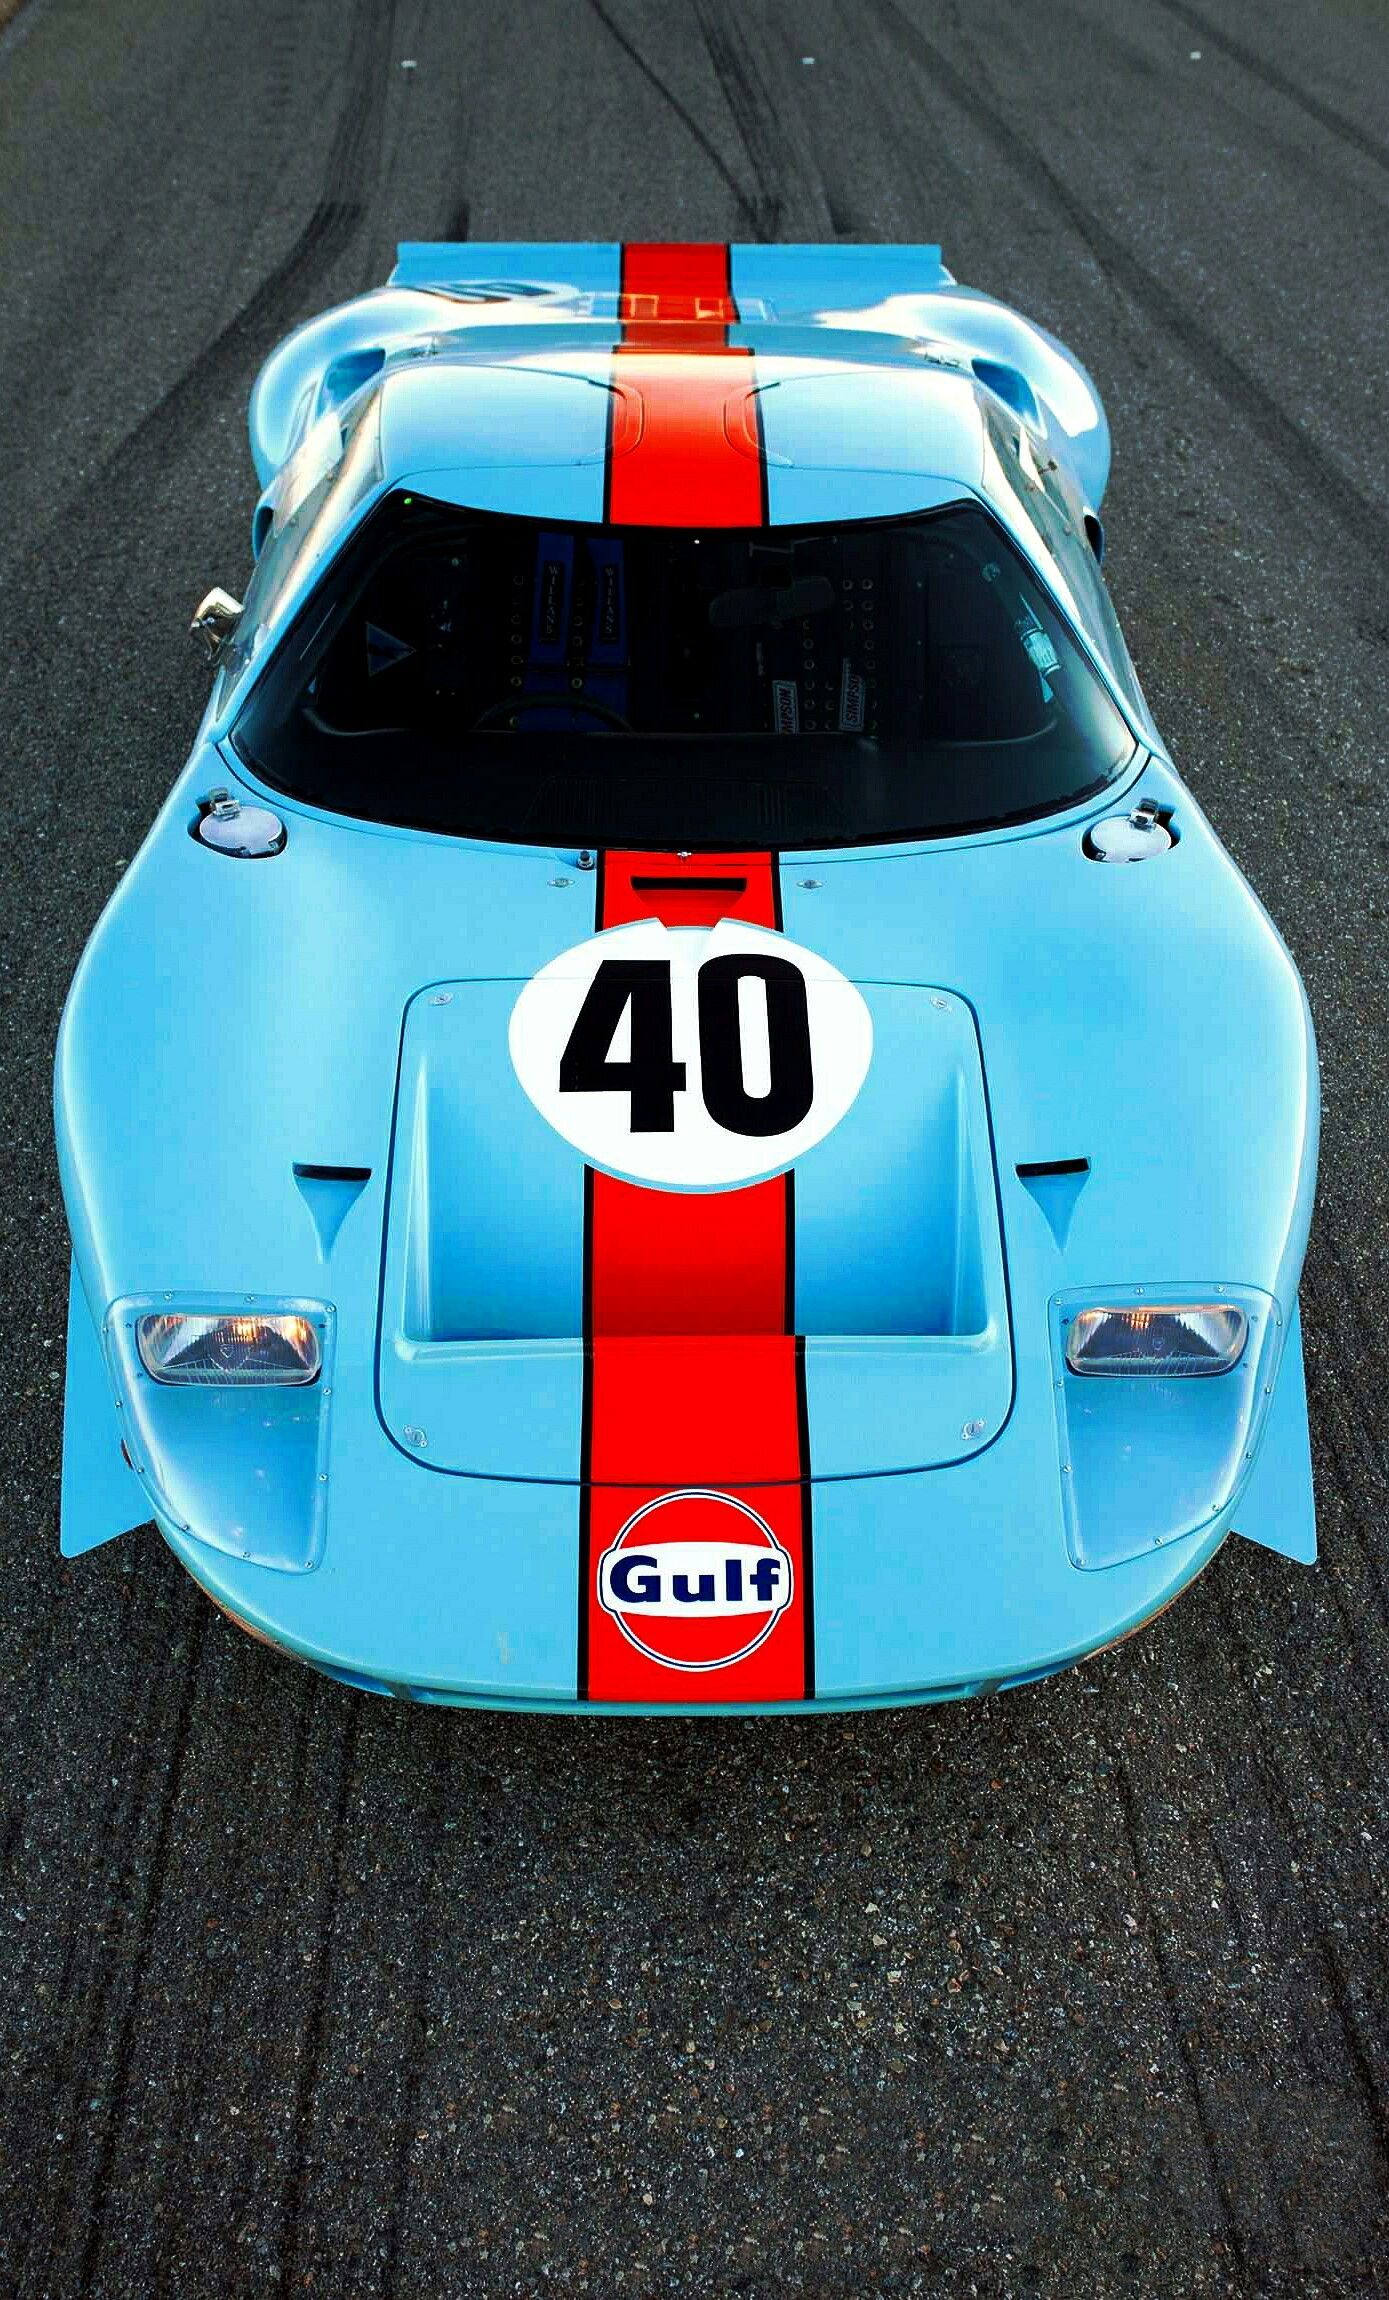 1968 Ford Gt40 In Gulf Livery Image Enhancements Are By Vonmonski